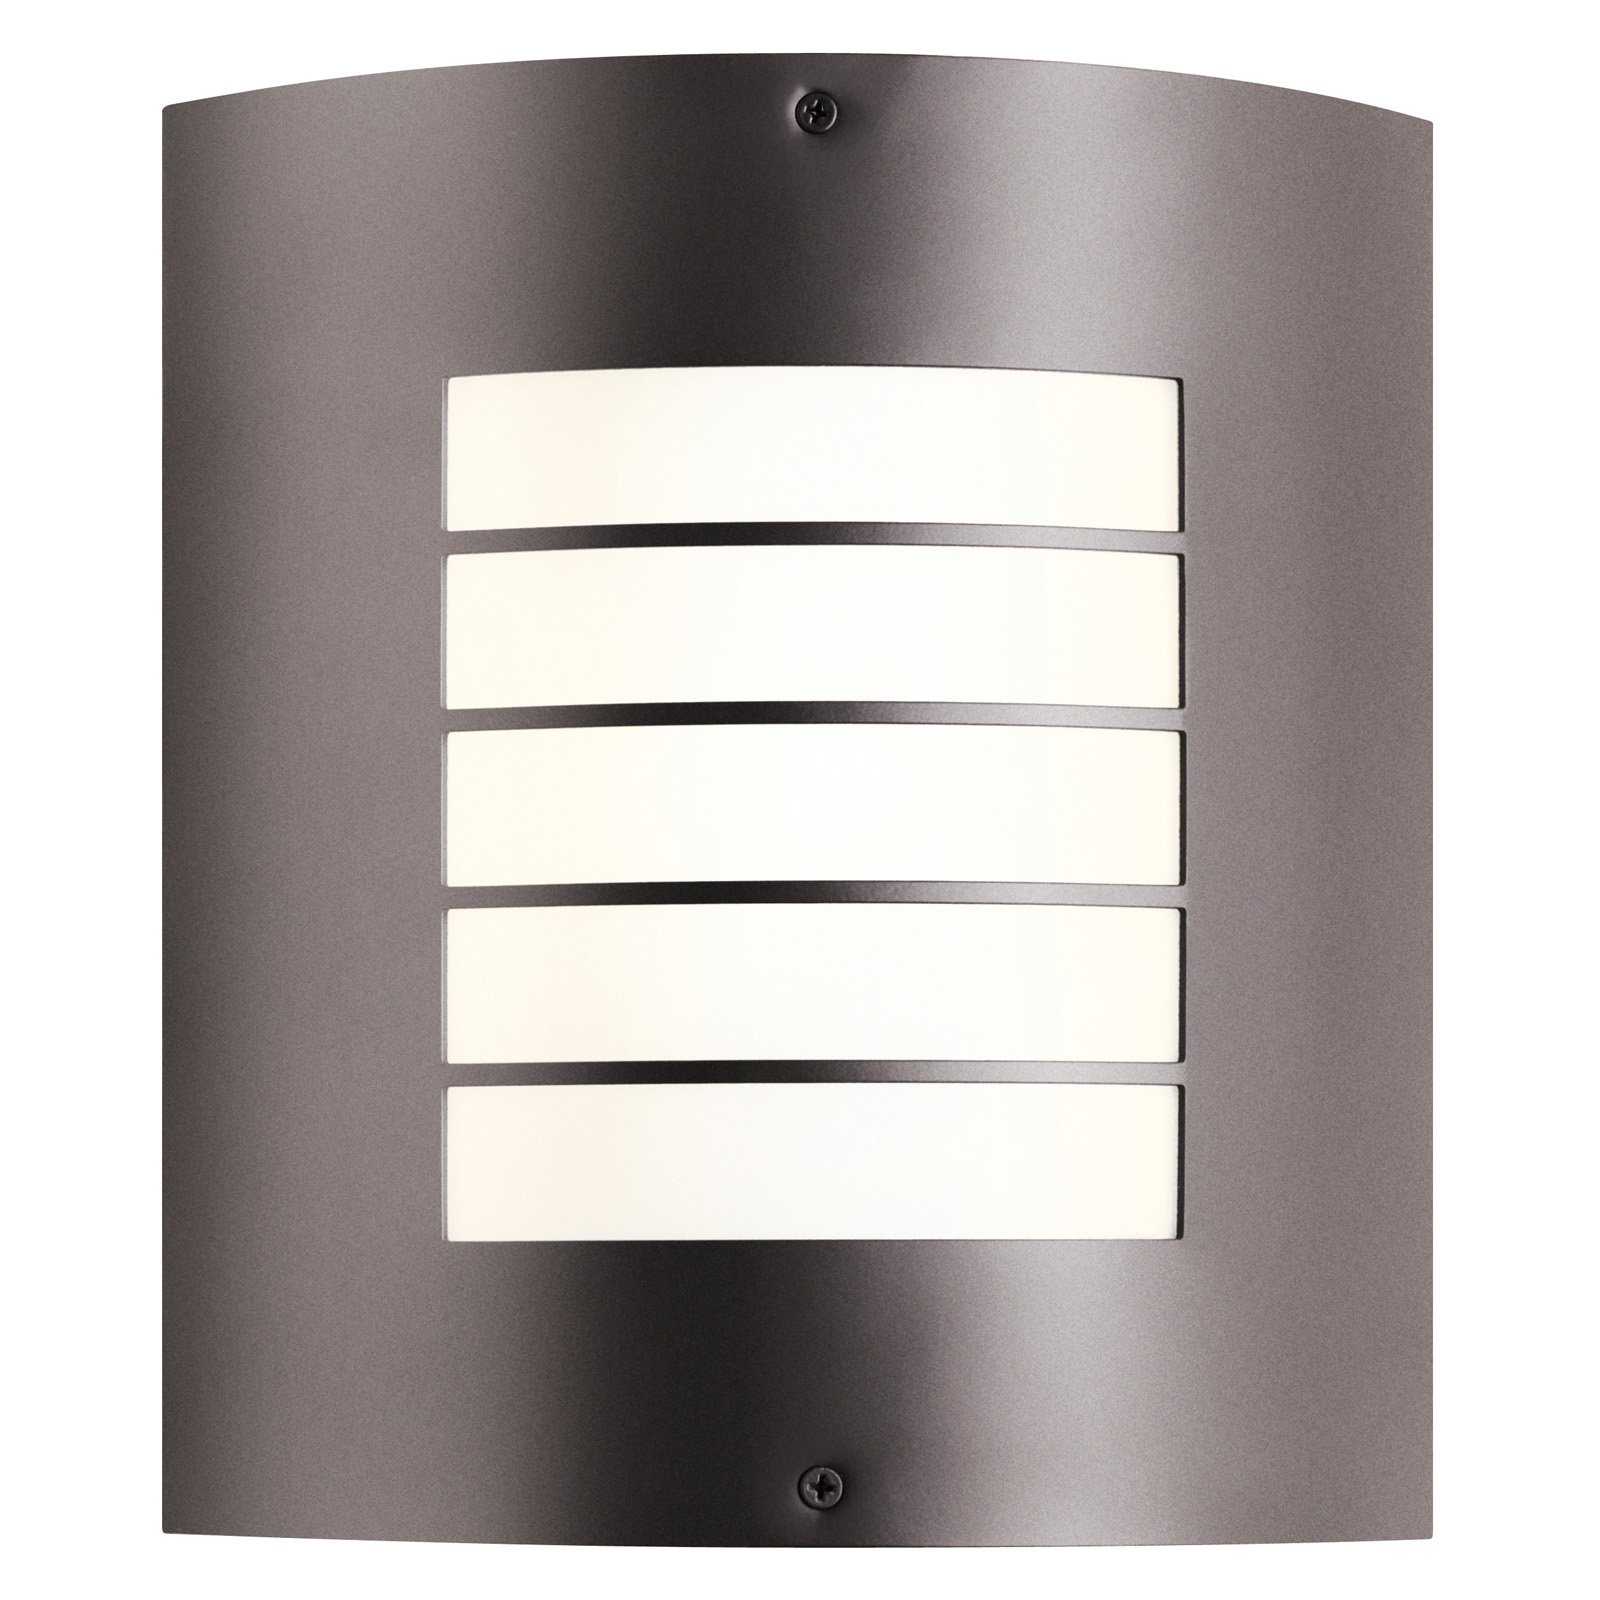 Kichler Newport 10640 Outdoor Wall Lantern - 9.5 in.